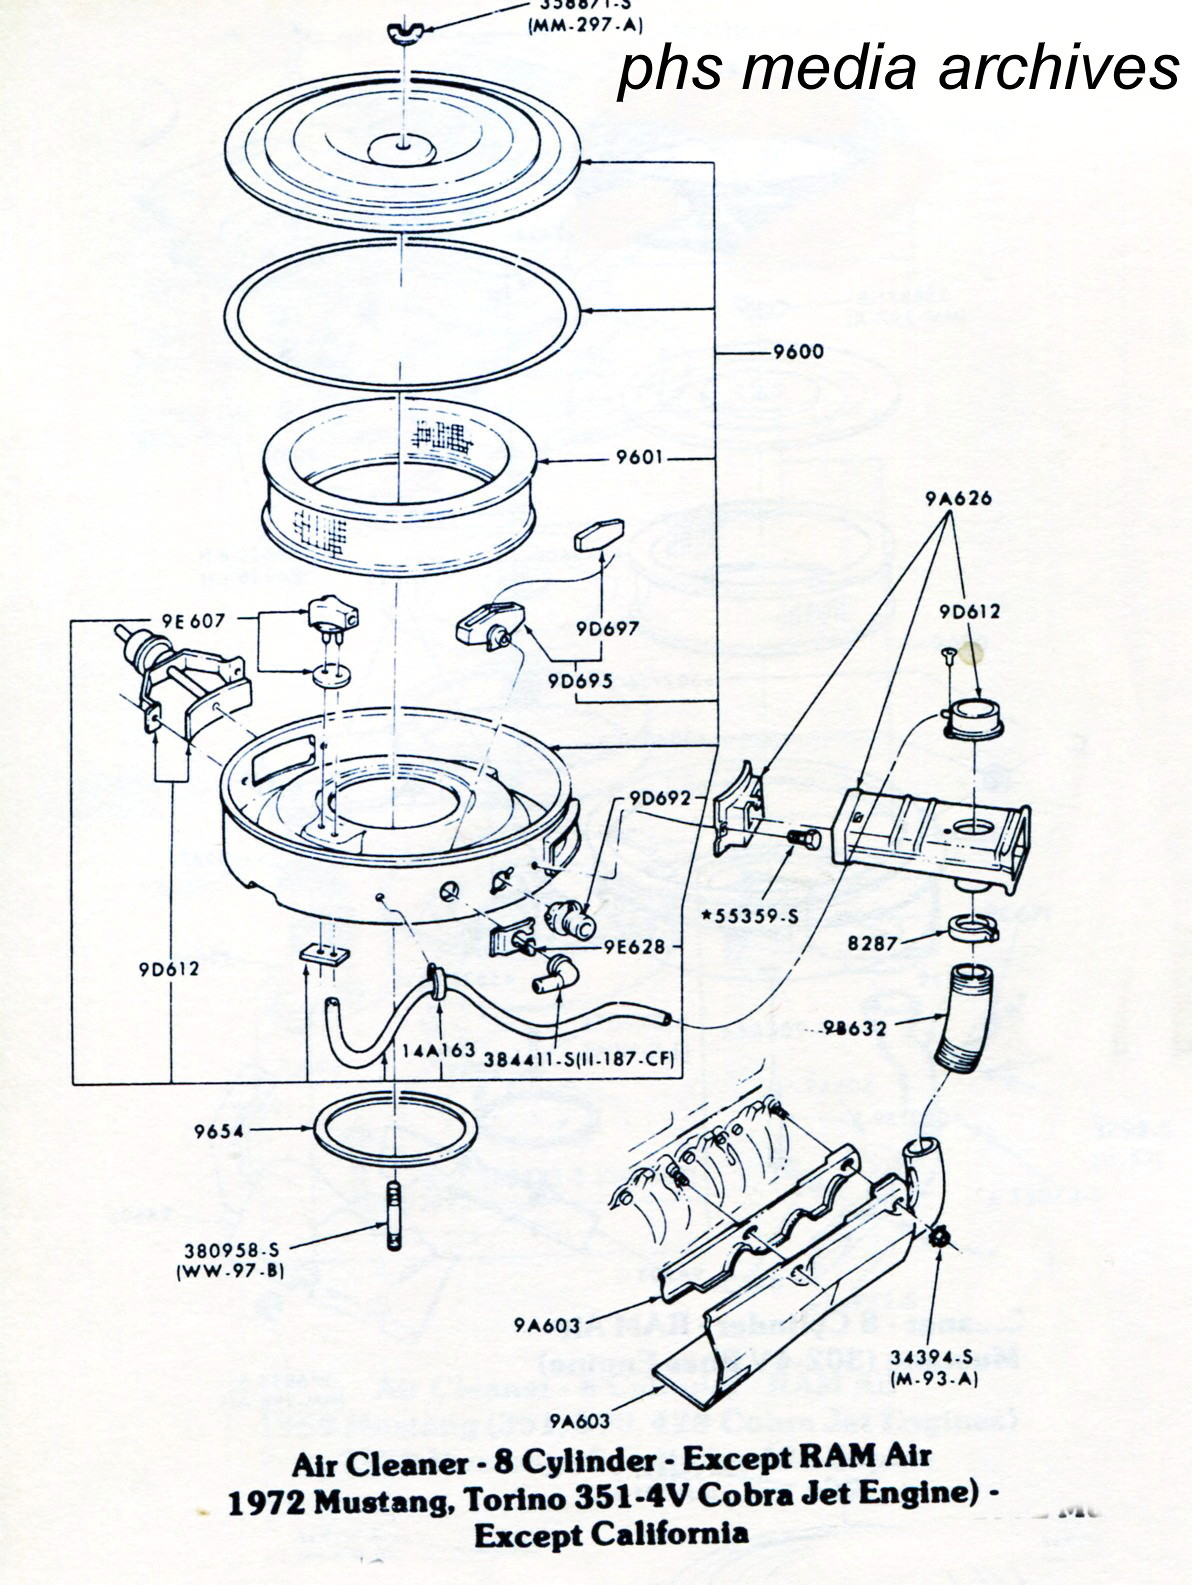 Craftsman Dyt 4000 Wiring Diagram Setting Up A Chess Board 420cc Engine Parts